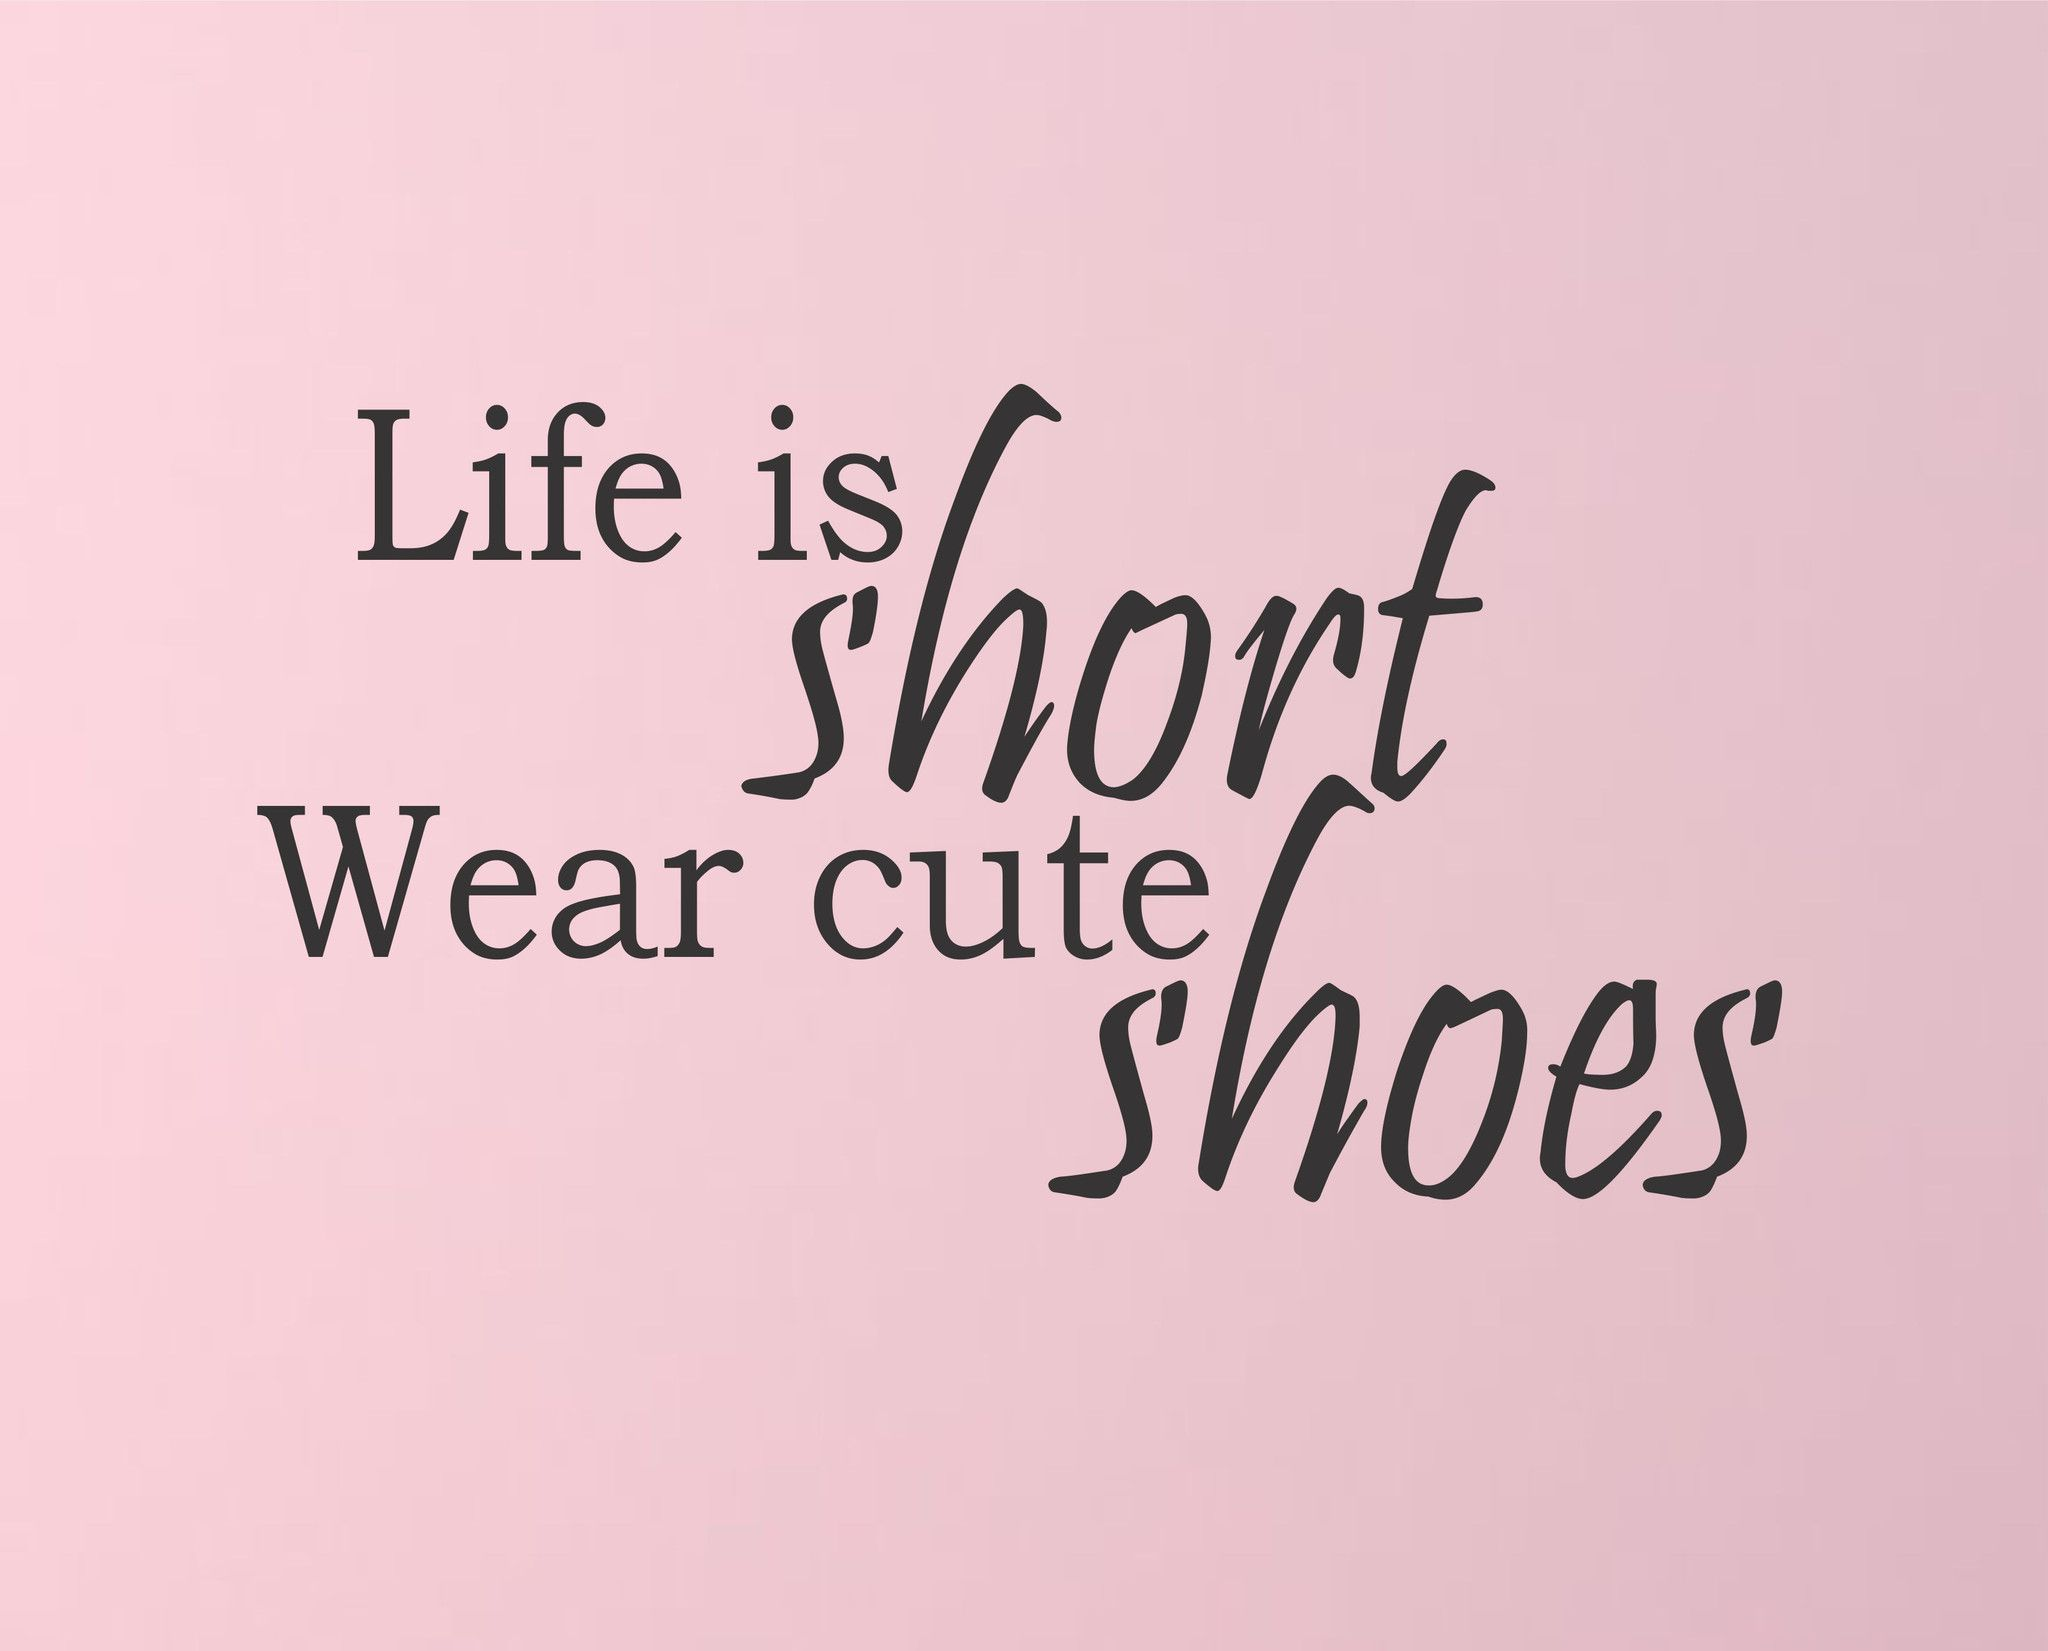 Shorts Quotes About Life Life Is Short Wear Cute Shoes Wall Decal  Shoe Wall Wall Decals